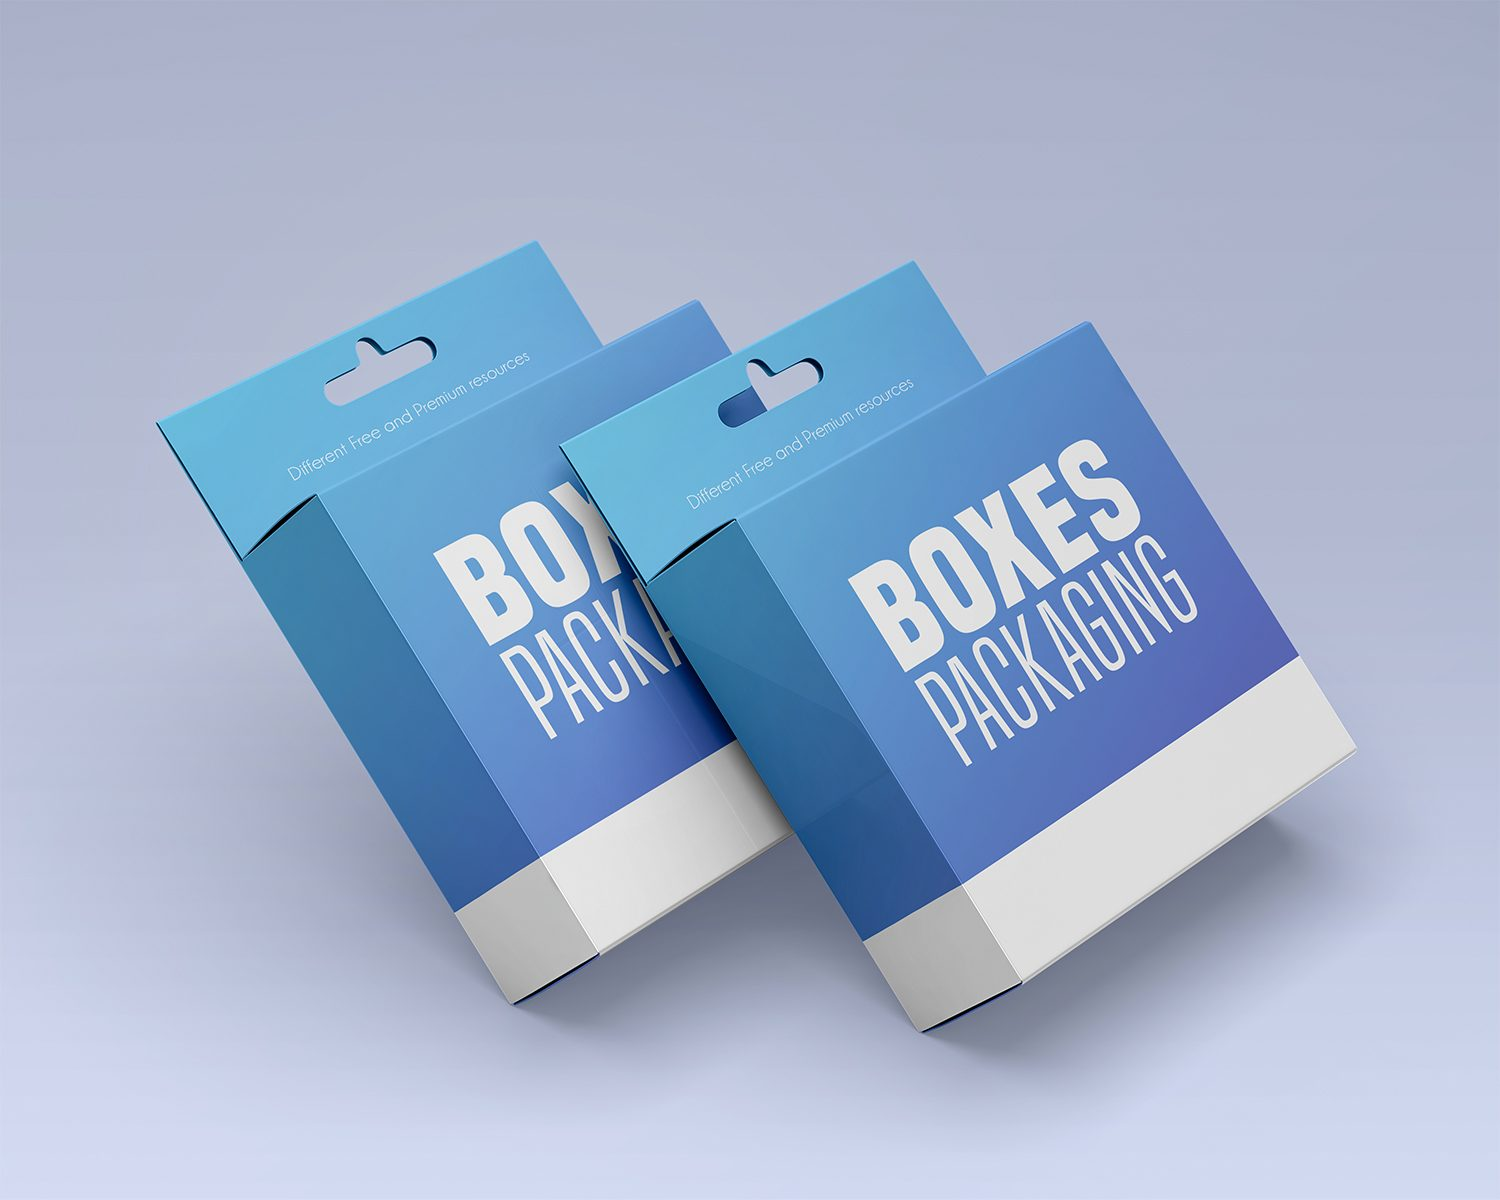 Free Box Packaging PSD Mockup Set